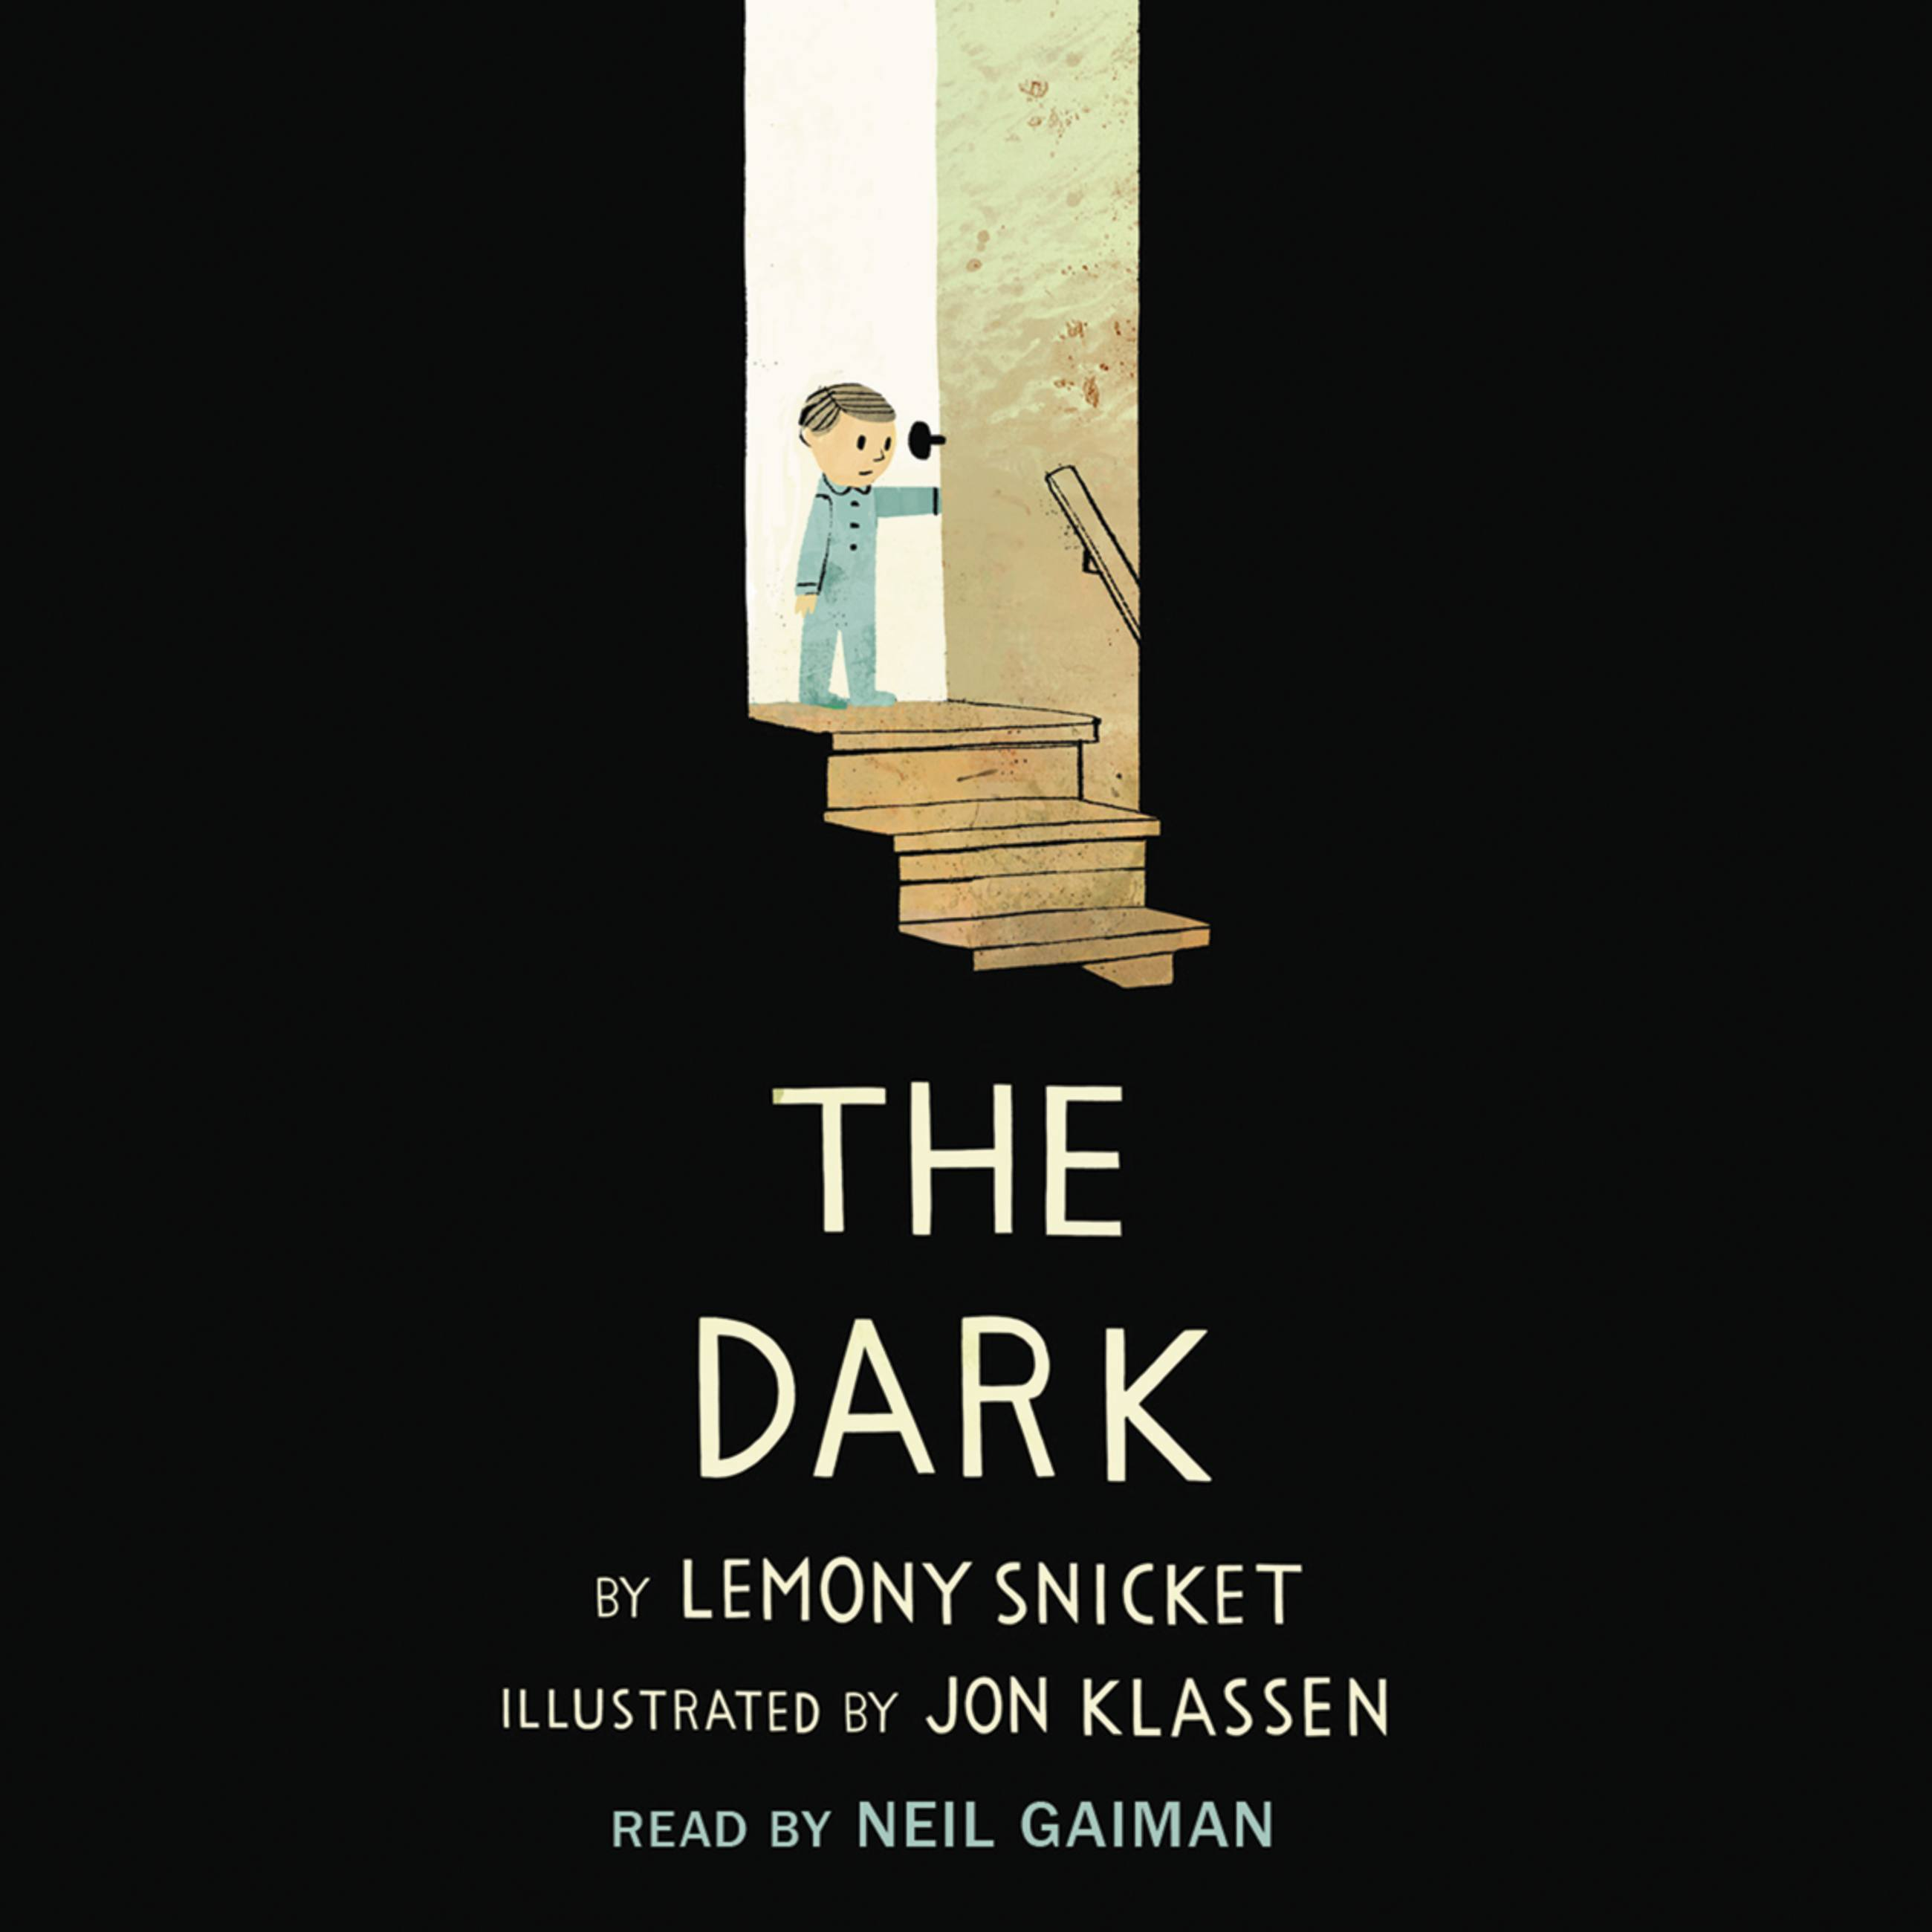 Cover Art for The Dark, ISBN: 9781619696891